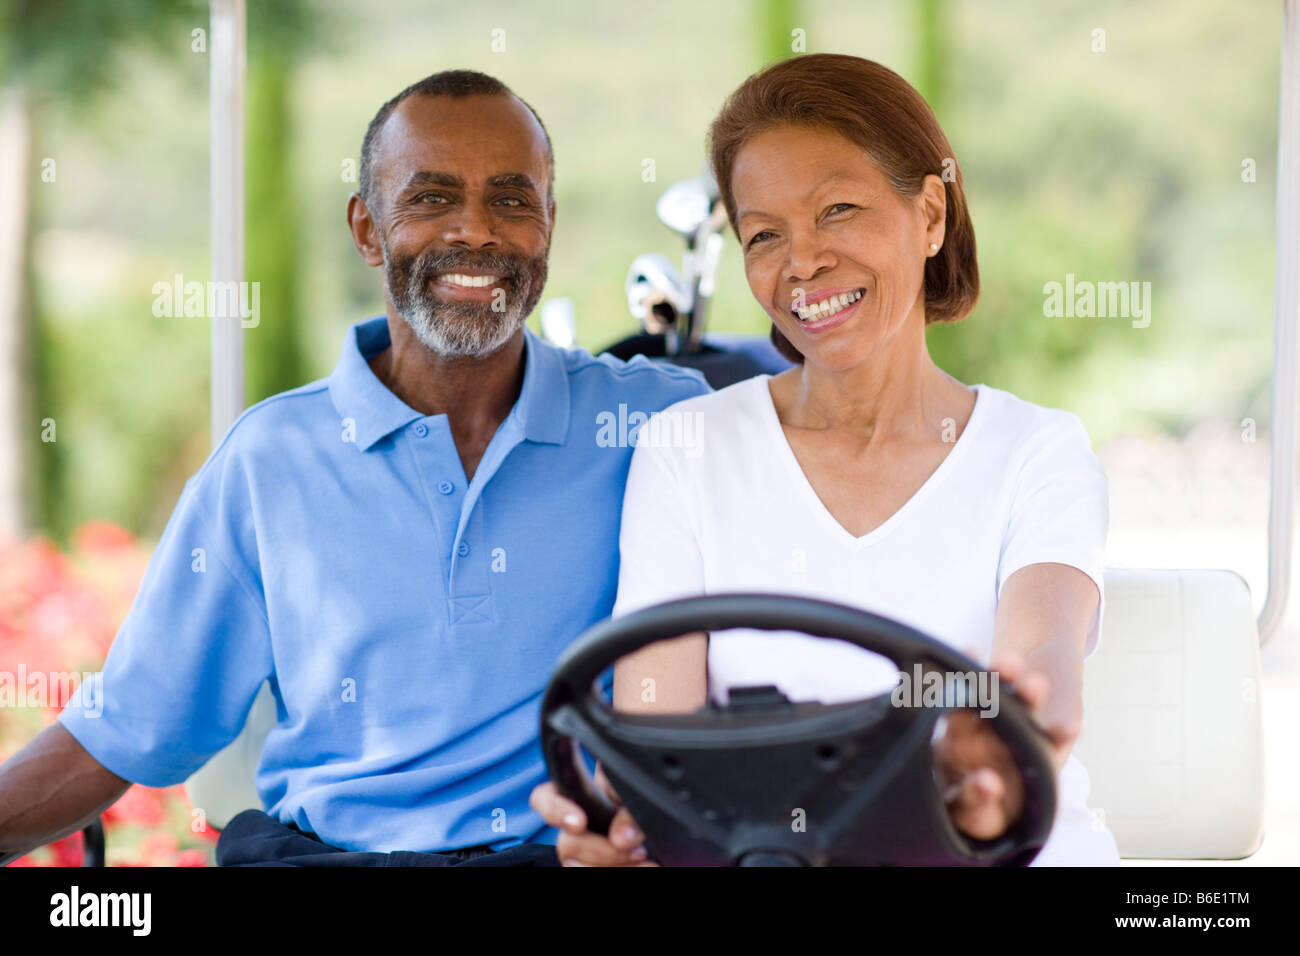 Golf players. Husband and wife using a golf cart during a round of golf. - Stock Image